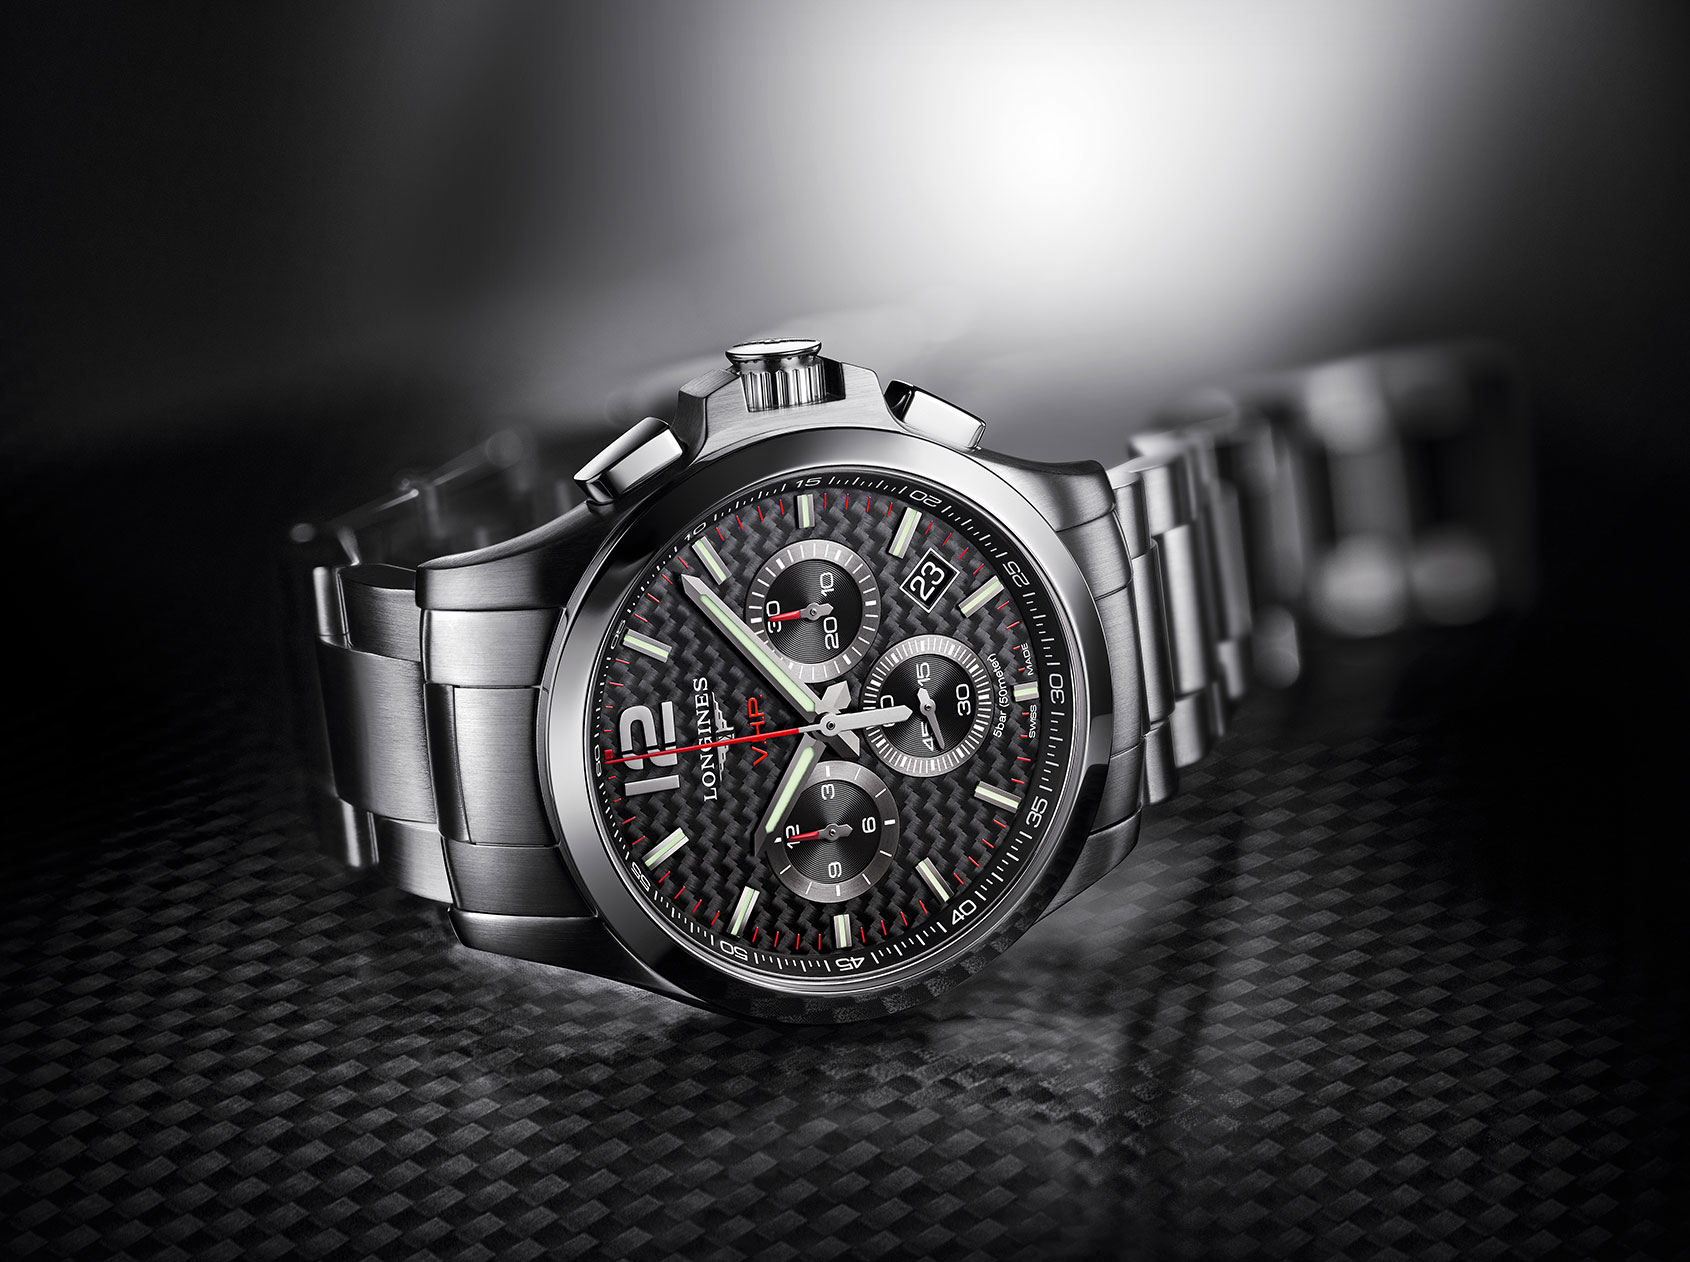 INTRODUCING: The Longines Conquest V.H.P. Chronograph